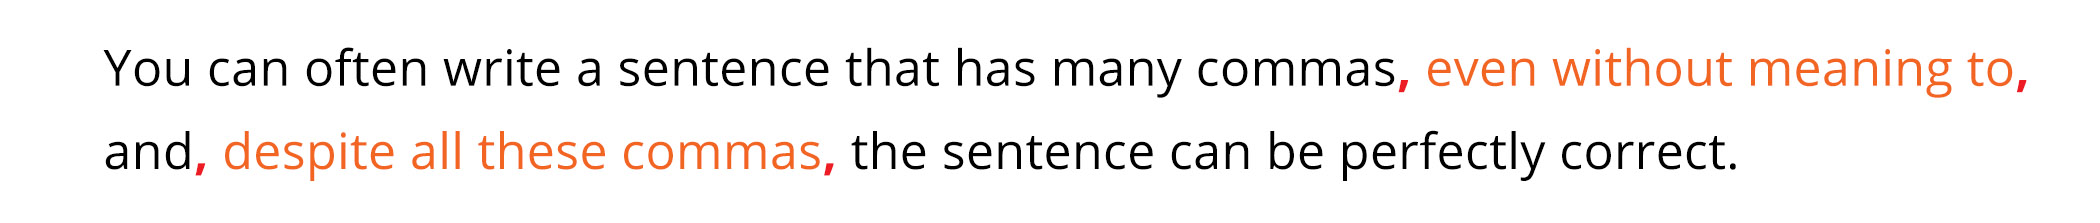 You can often write a sentence that has many commas, even without meaning to, and, despite all these commas, the sentence can be perfectly correct.